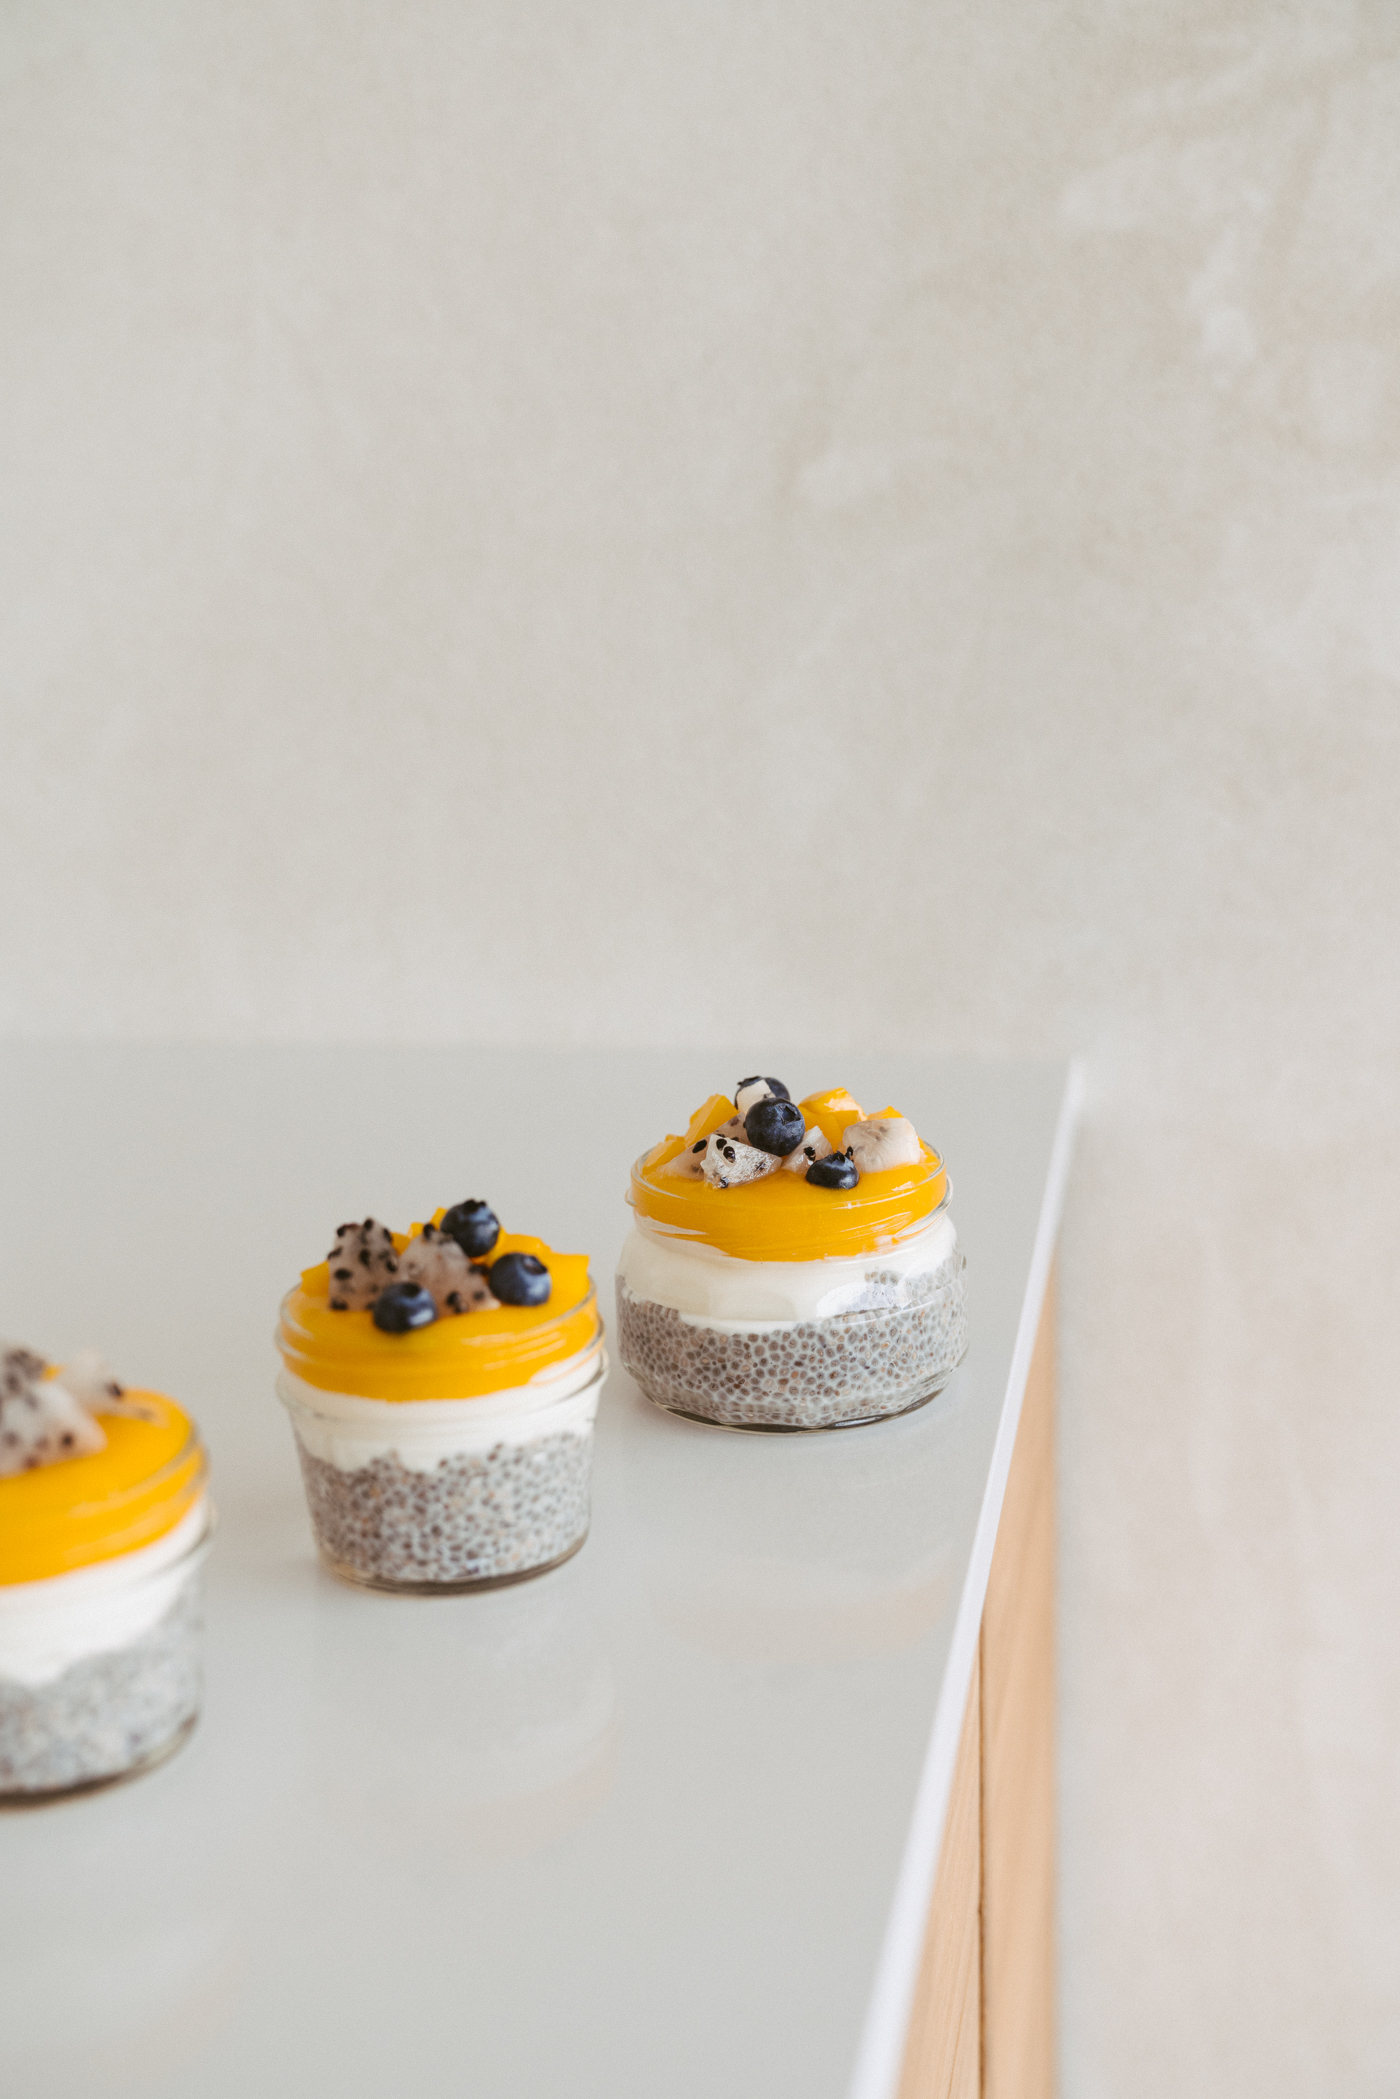 mango_passionfruit_chia_and_yoghurt_jars-3.jpg